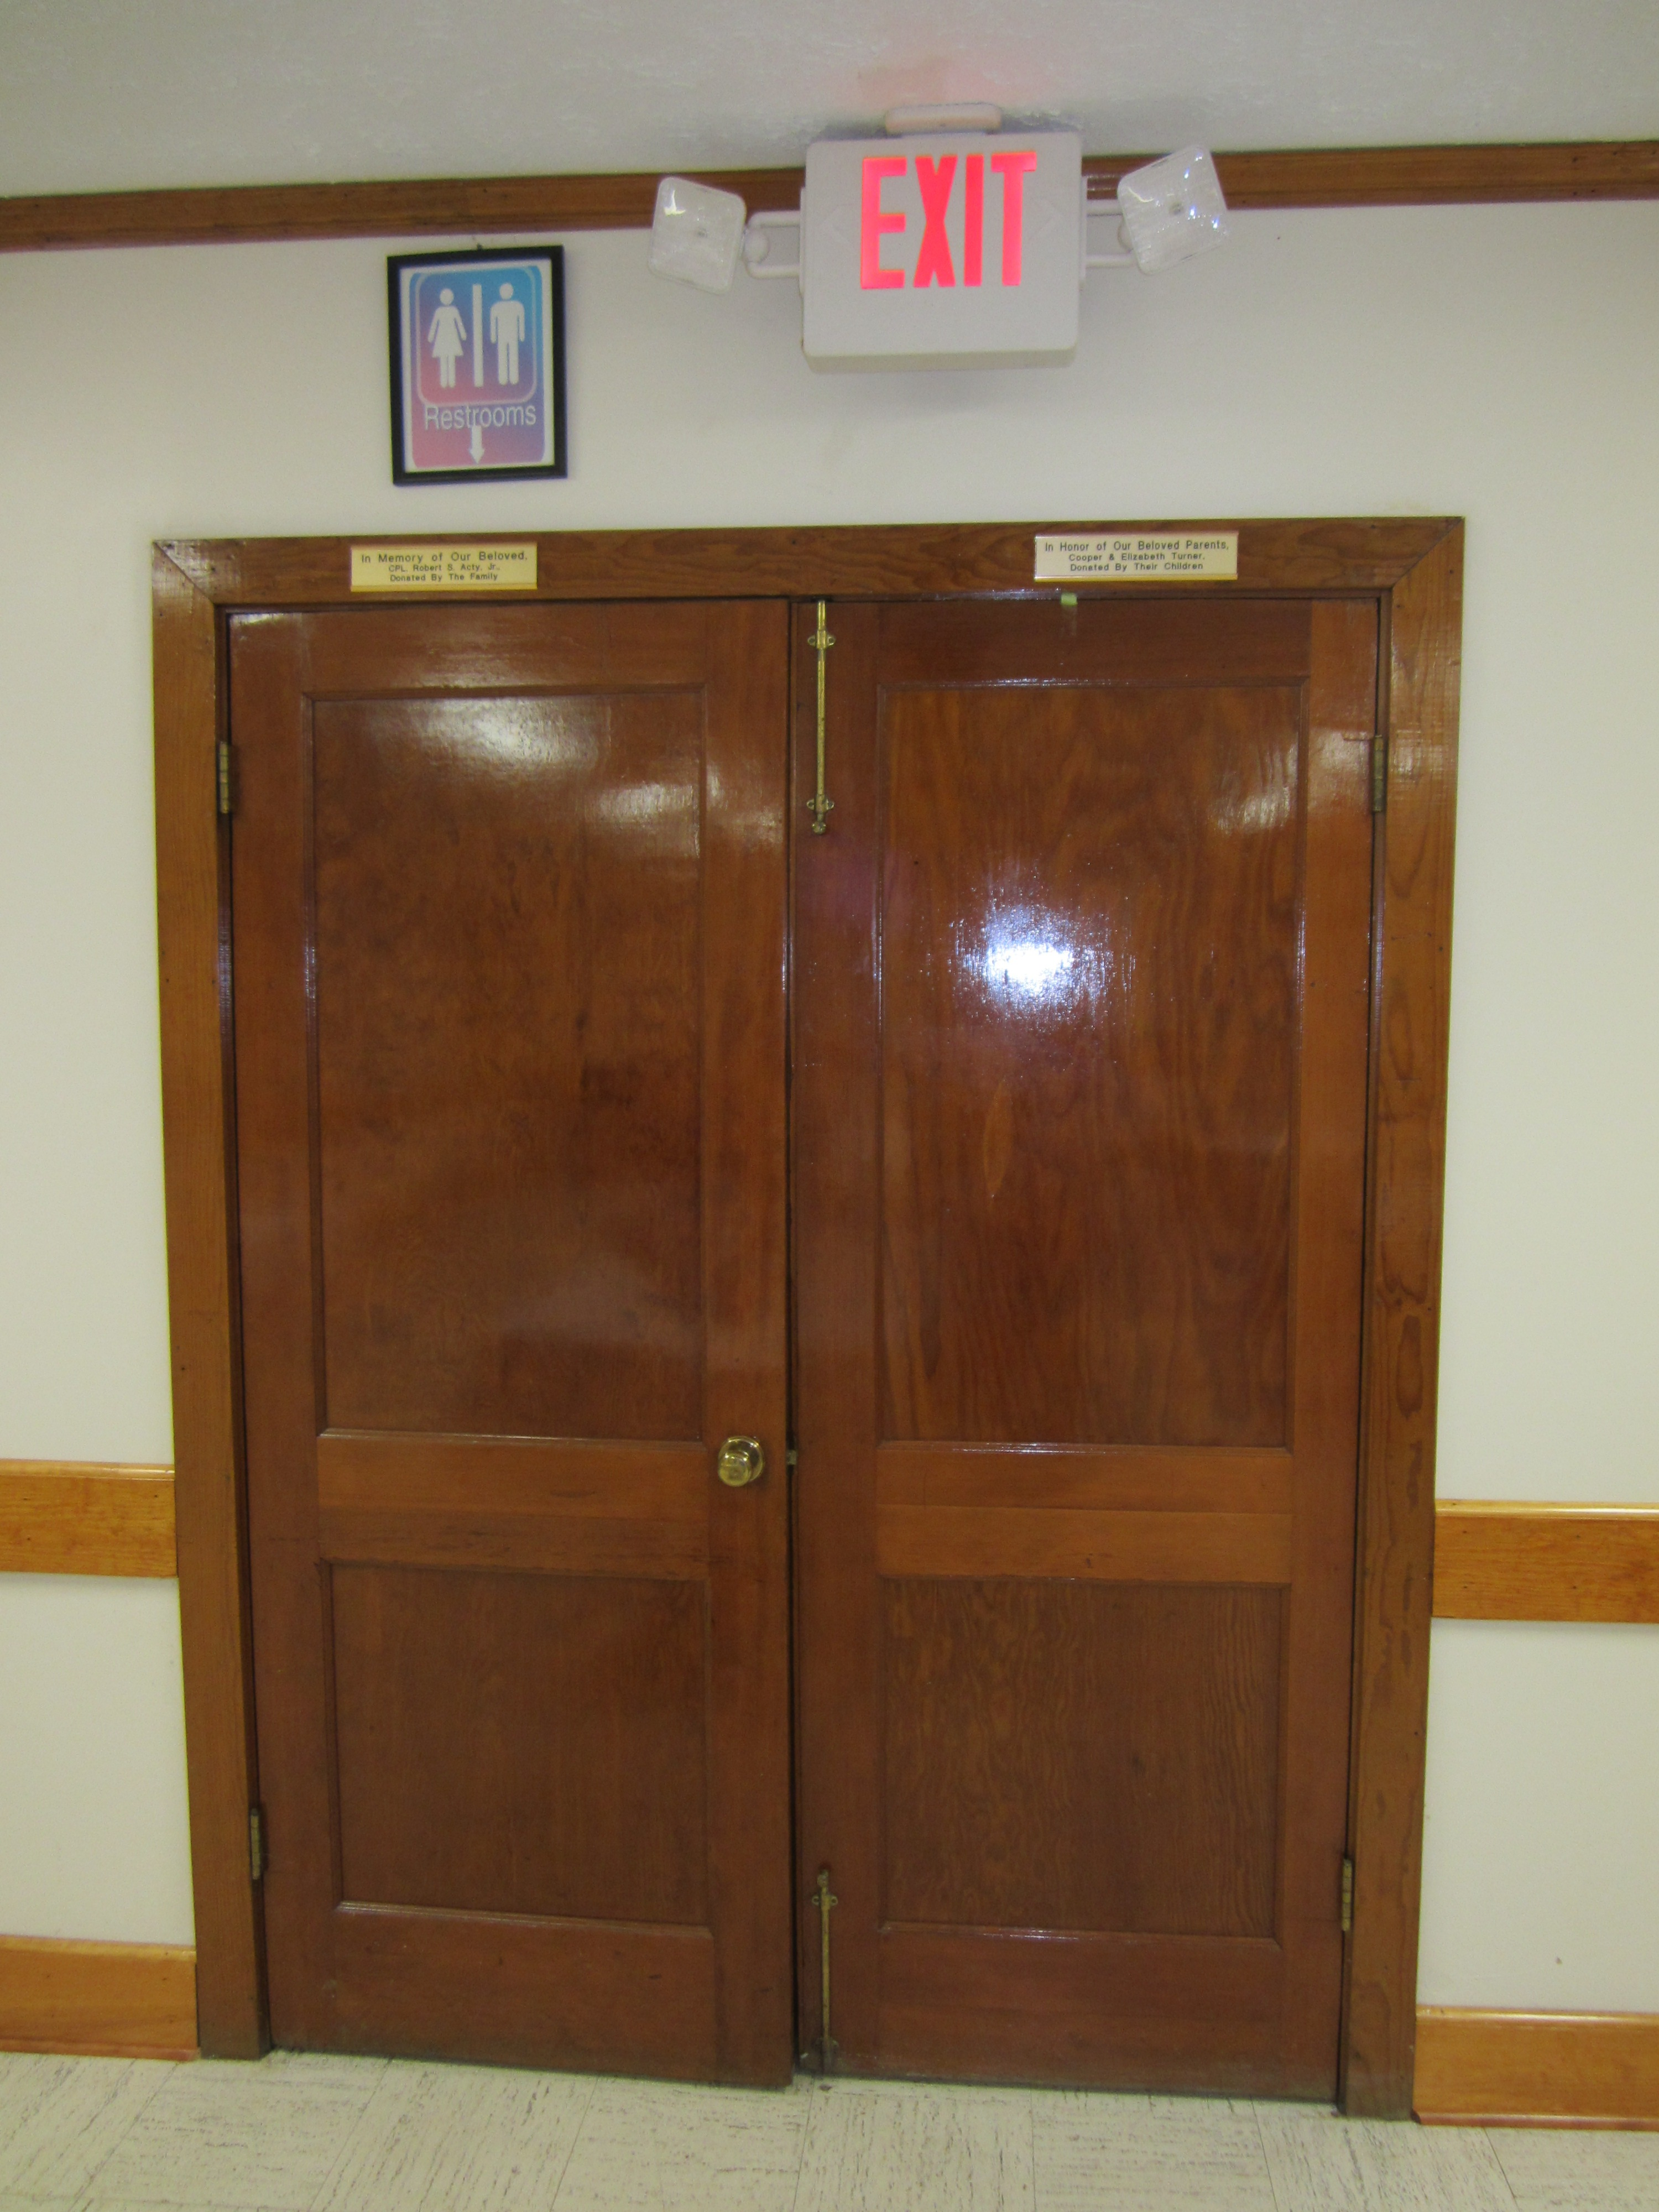 Double doors leading to hall and bathrooms